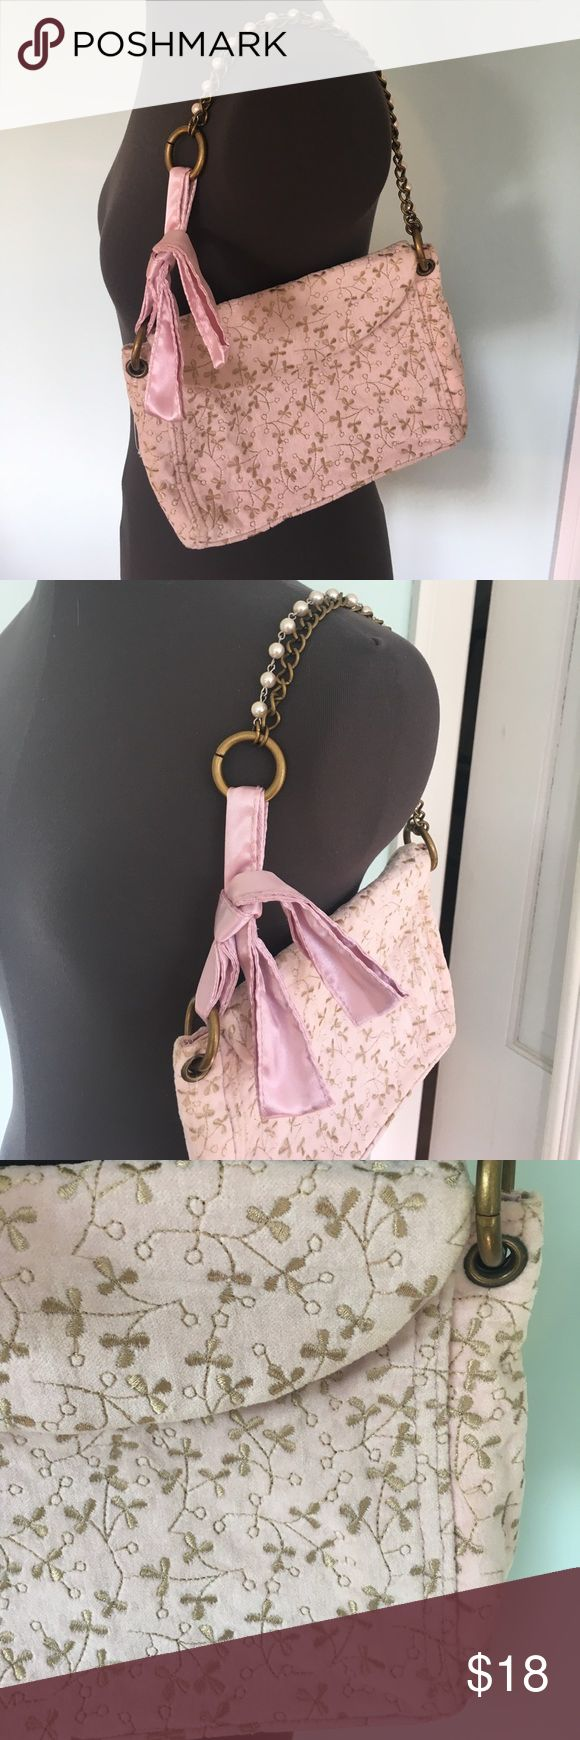 GAP purse Pretty floral printed purse to wear out to dinner or to an event! Bow detail with pearl and metal strap. GAP Bags